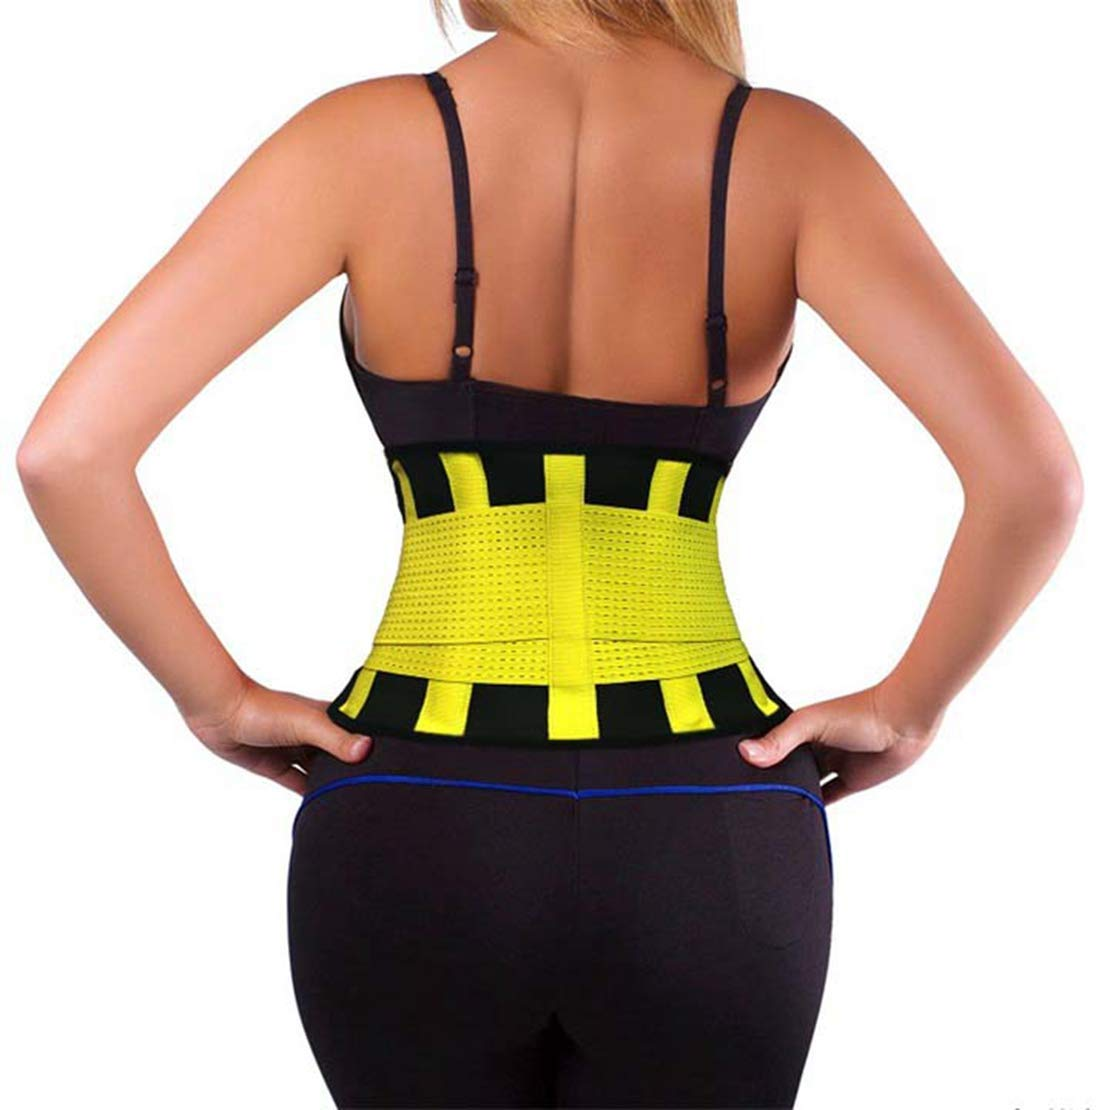 373b30eef8 Get Quotations · Women's Colorful Sport Posture Corrector Back Support Belt  Lumbar Spine Pain Lumbar Traction Belt Lower Back